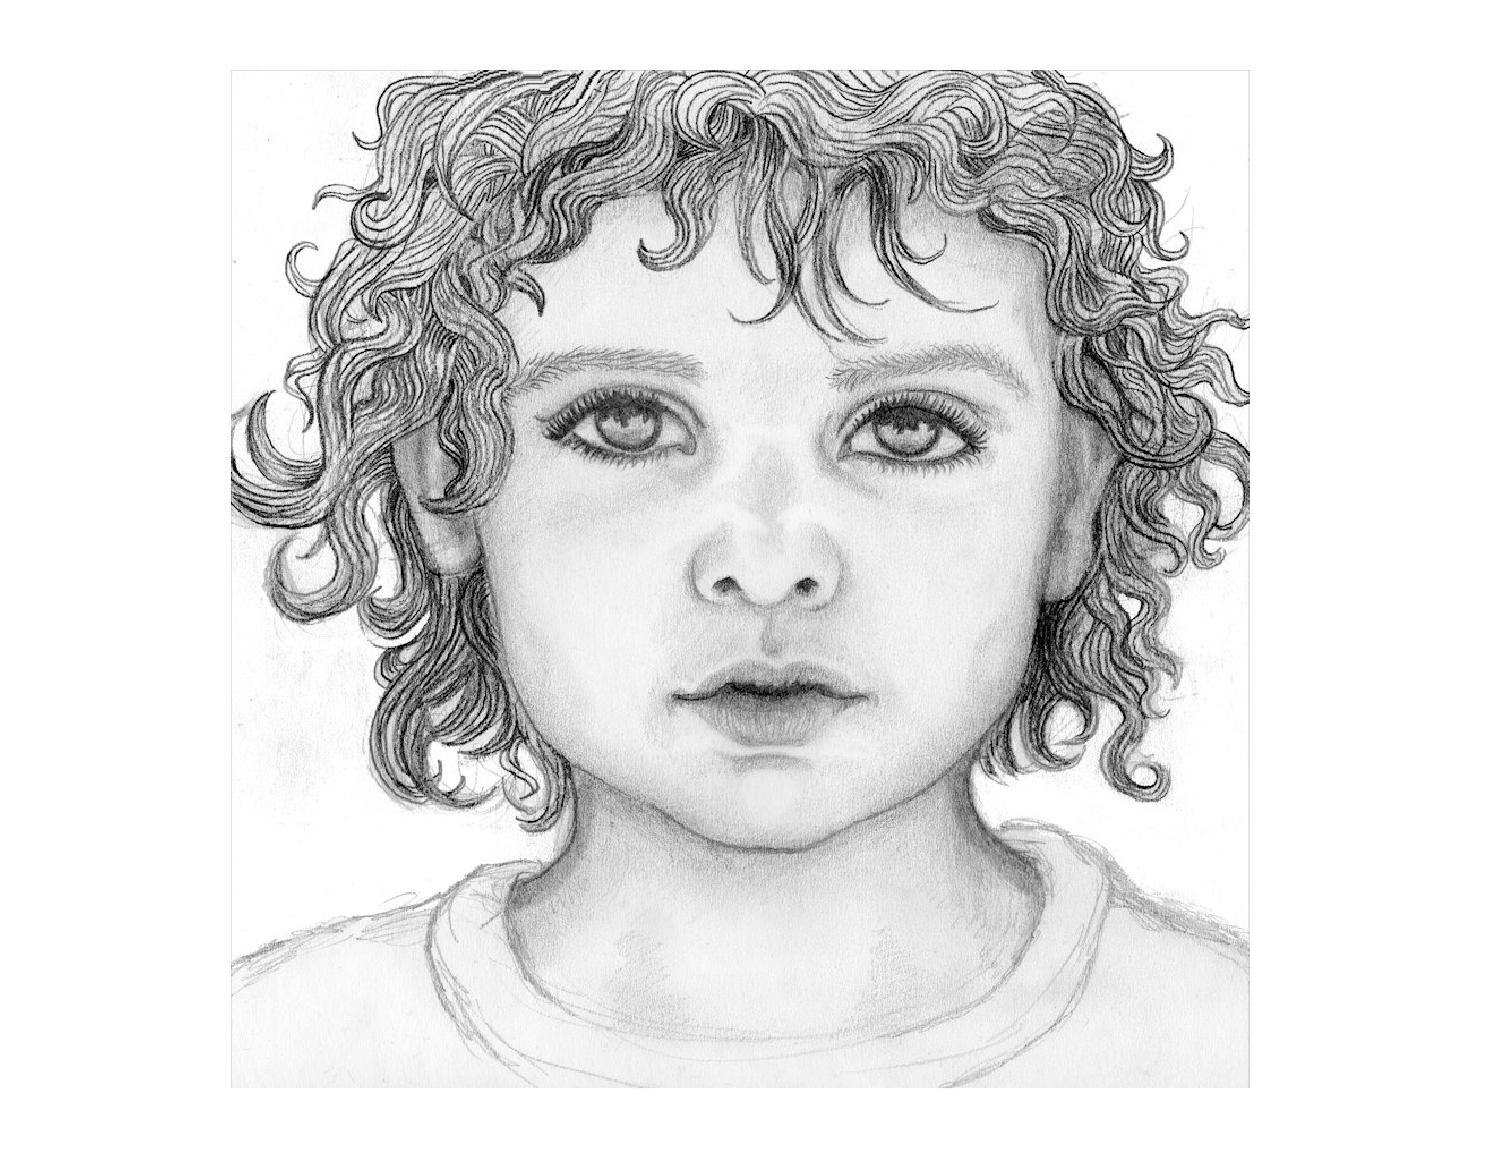 Pencil portrait step by step drawing lessons best way to learn how to draw best learn to draw boo by dinamica issuu